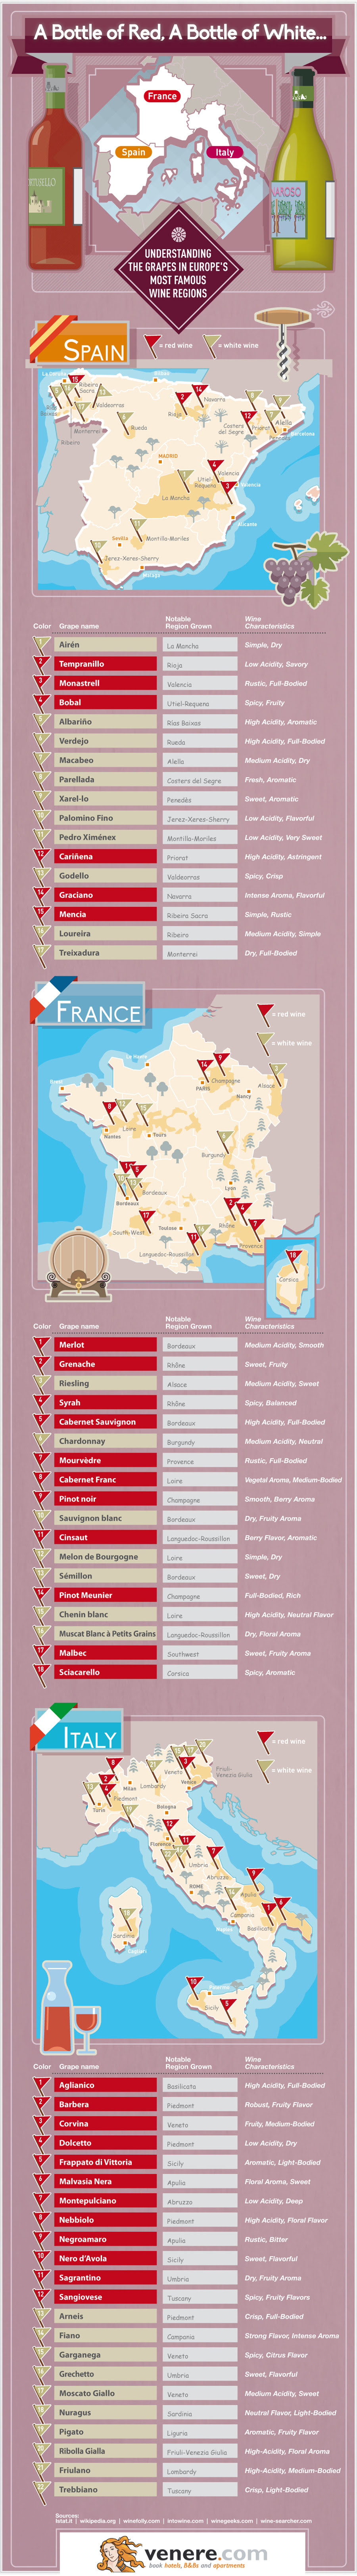 Infographic: A Bottle of Red, A Bottle of White: A Wine Map of Southern Europe